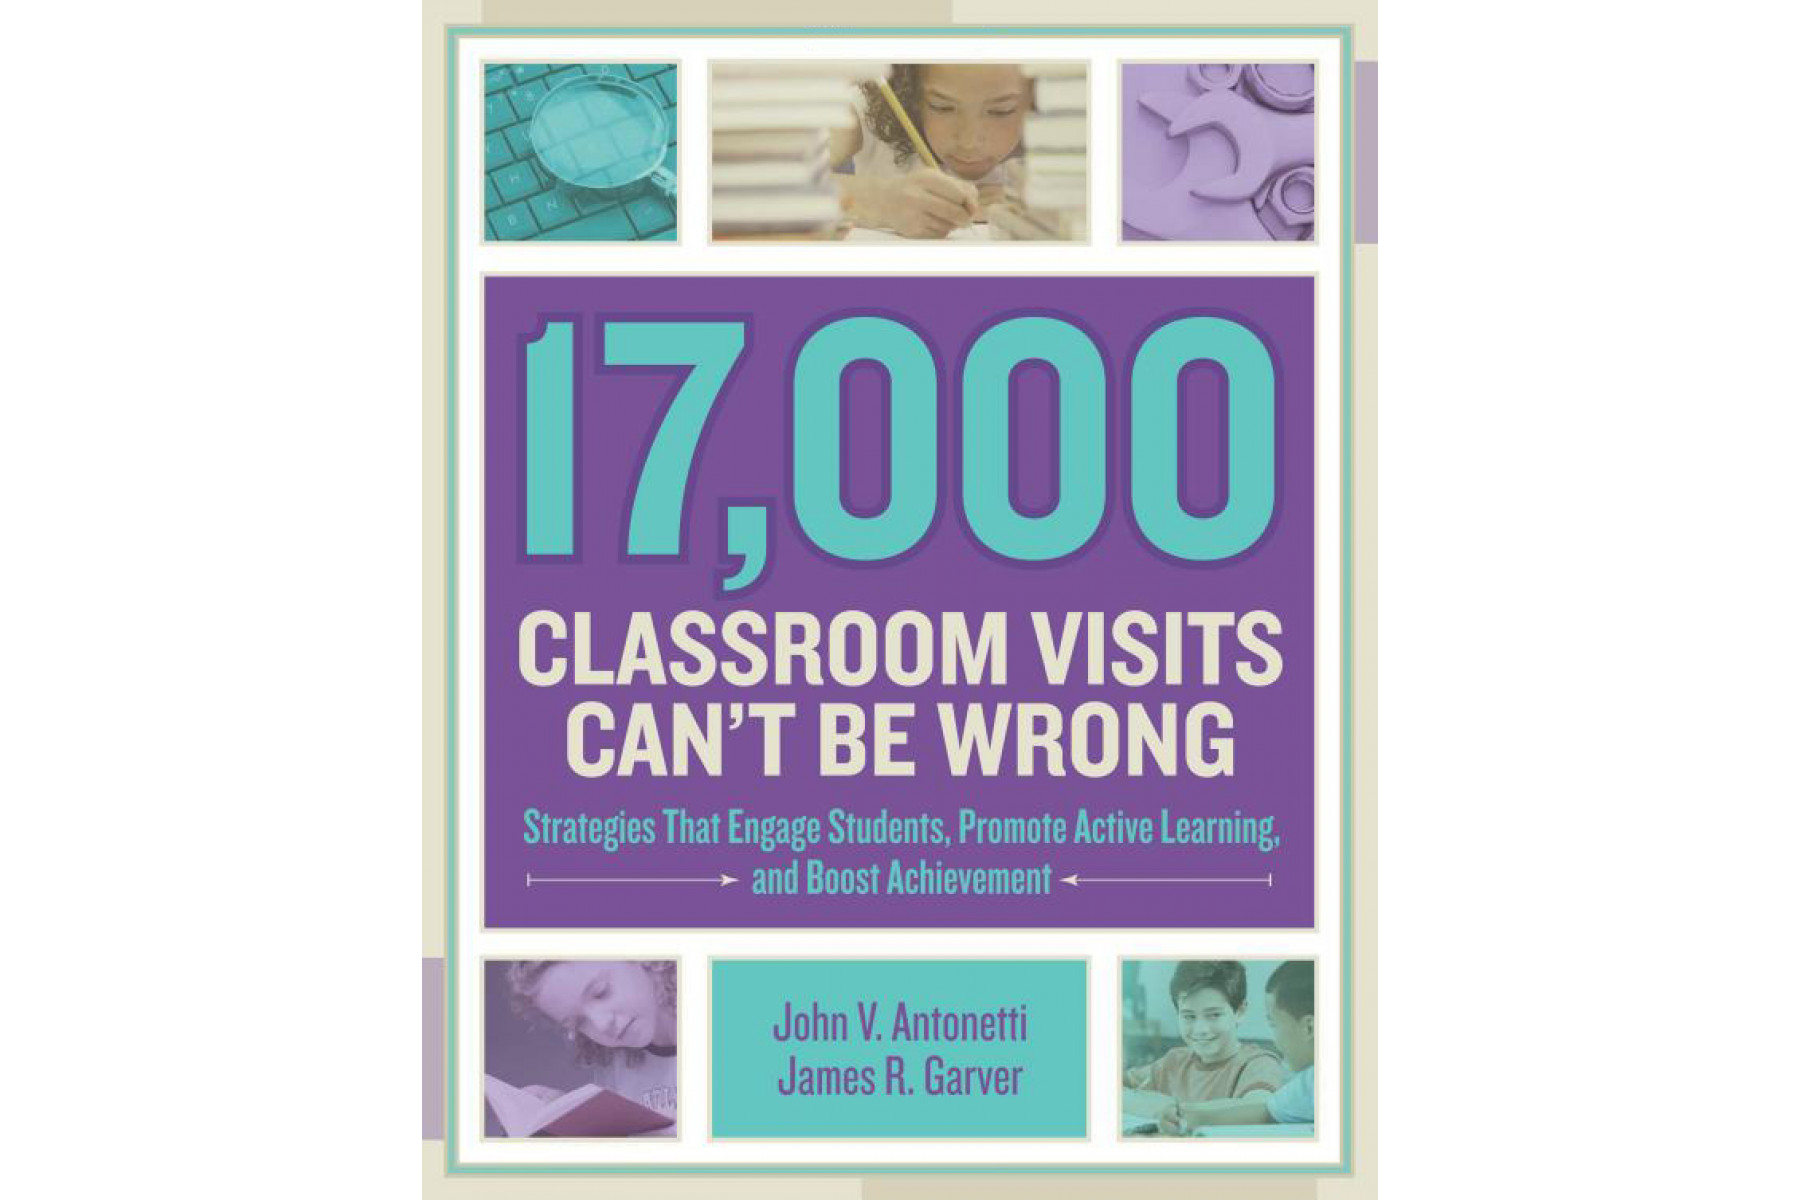 17,000 Classroom Visits Can't Be Wrong: Strategies That Engage Students, Promote Active Learning, an